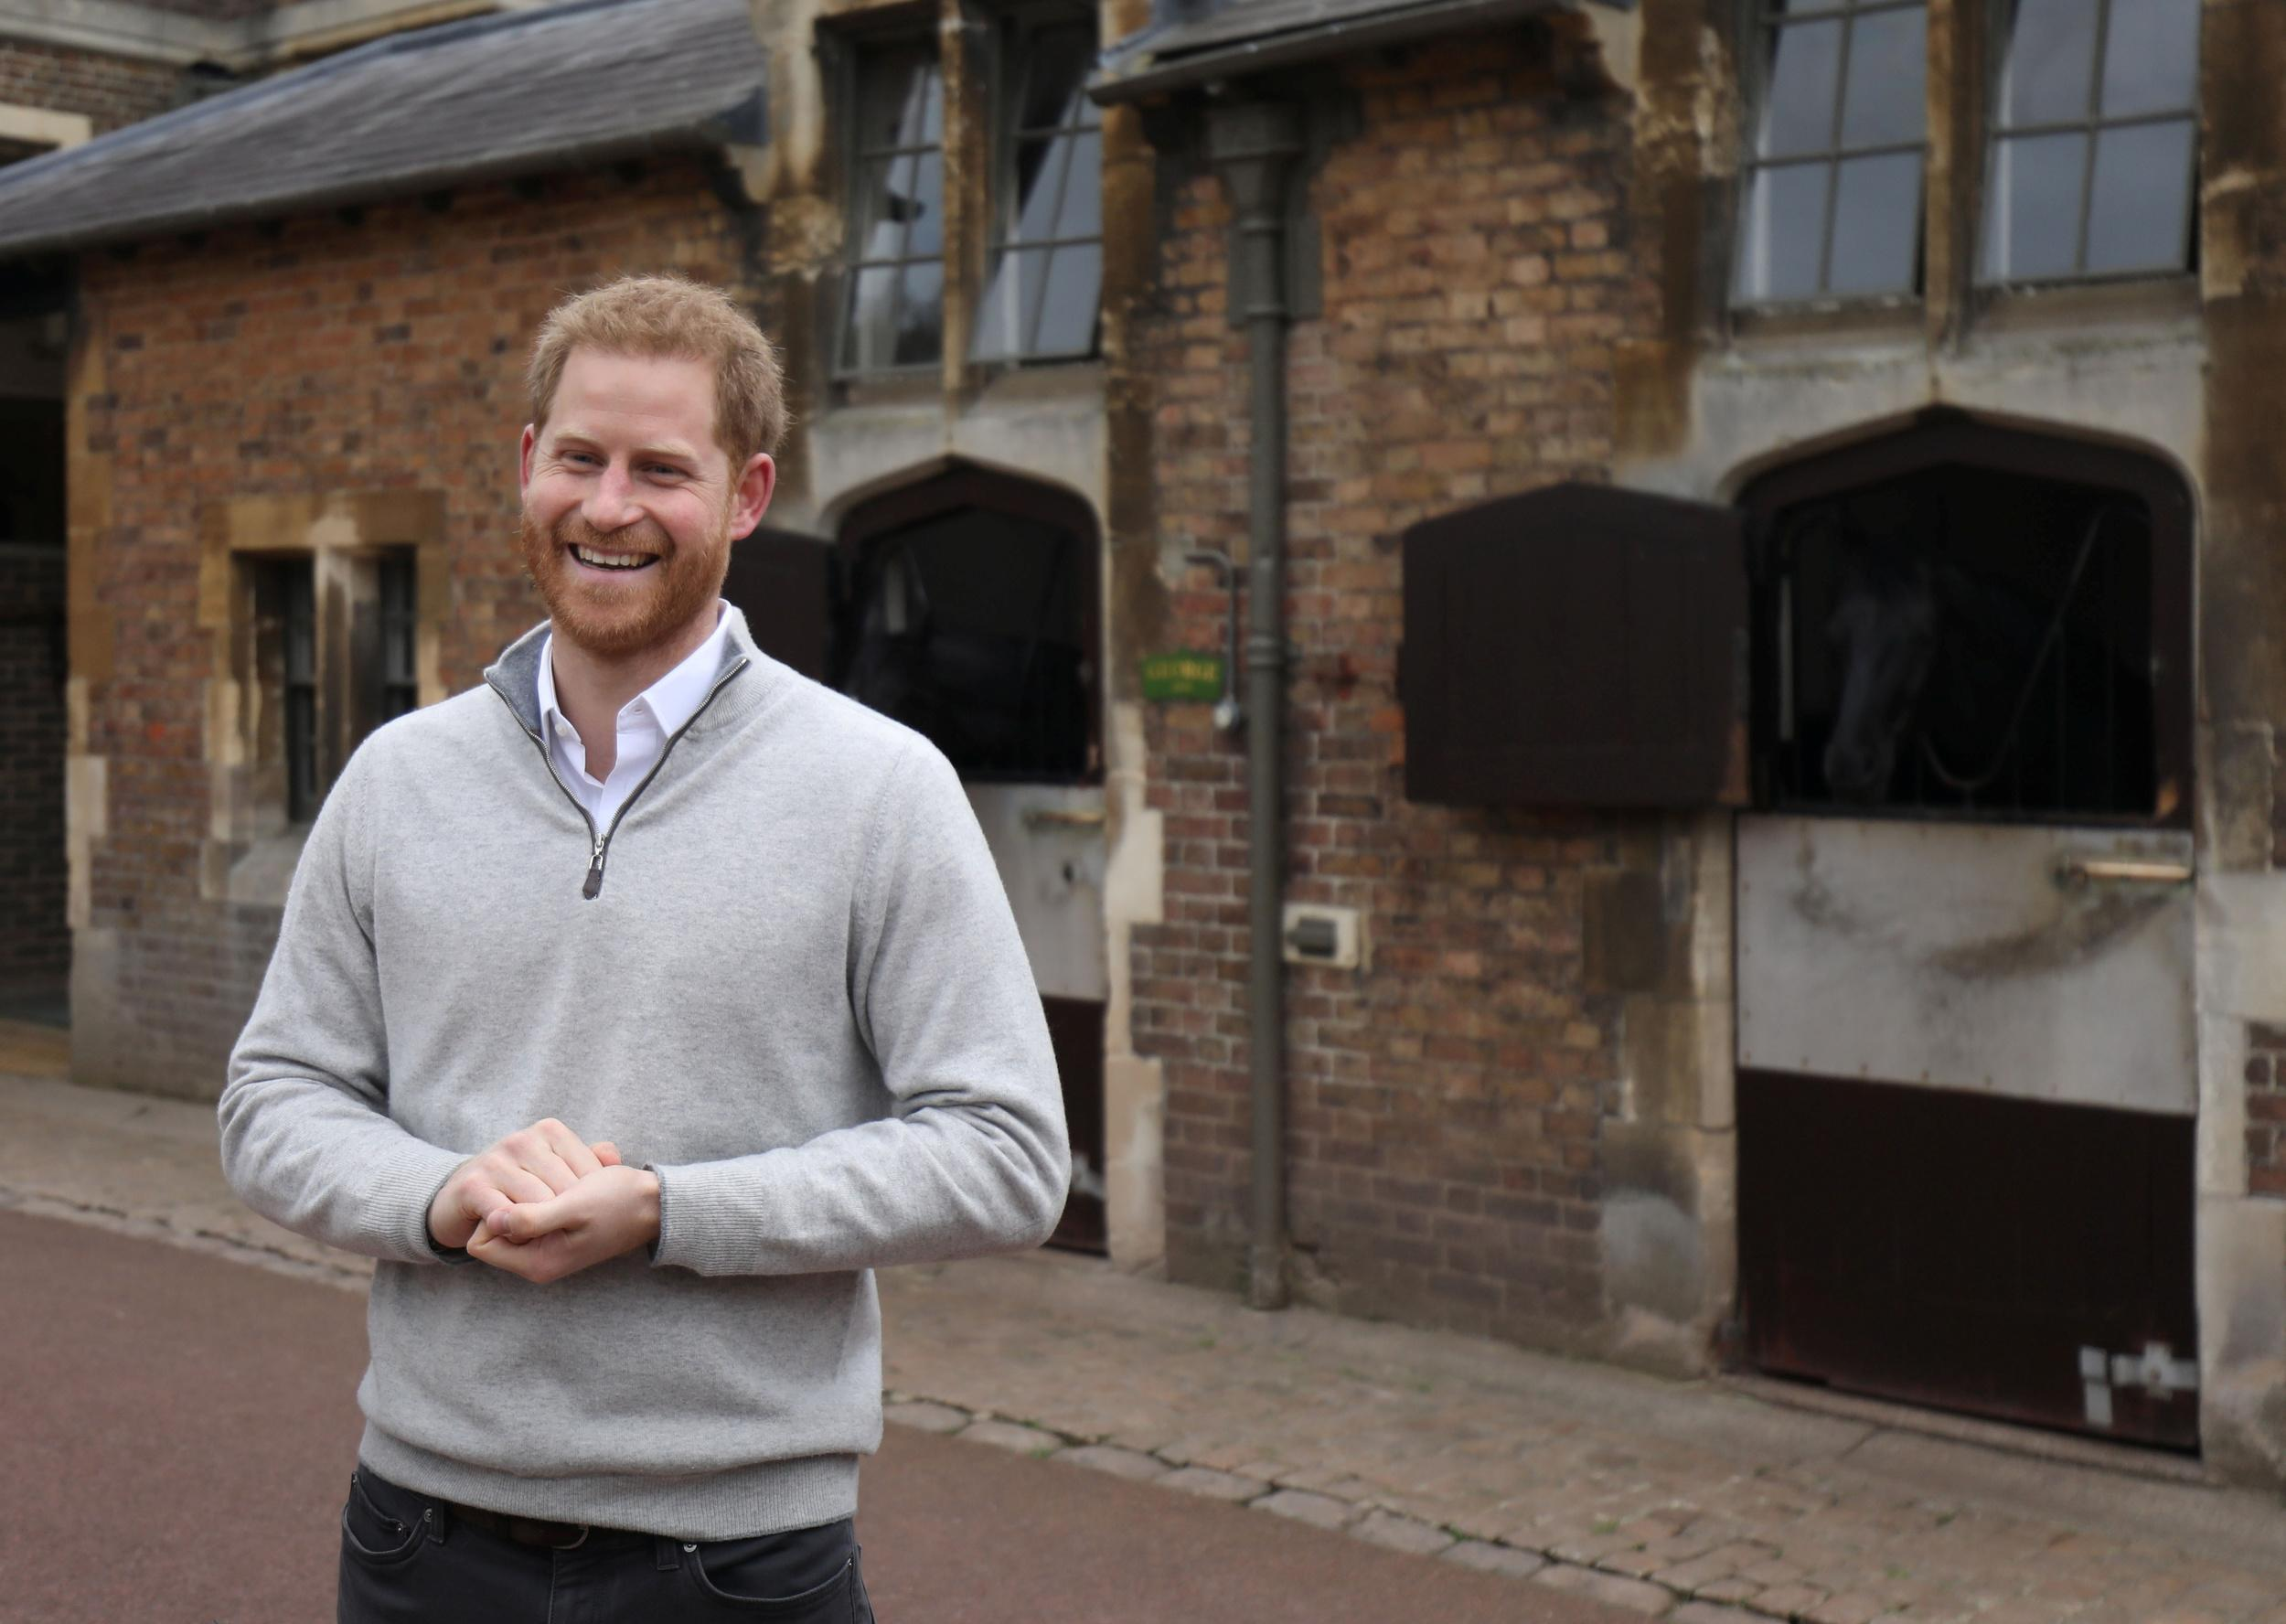 Britain's Prince Harry smiles as he speaks to the media after Meghan, Duchess of Sussex, gave birth to a baby boy, at Windsor Castle, Berkshire county, Britain May 6, 2019.  Steve Parsons/Pool via REUTERS